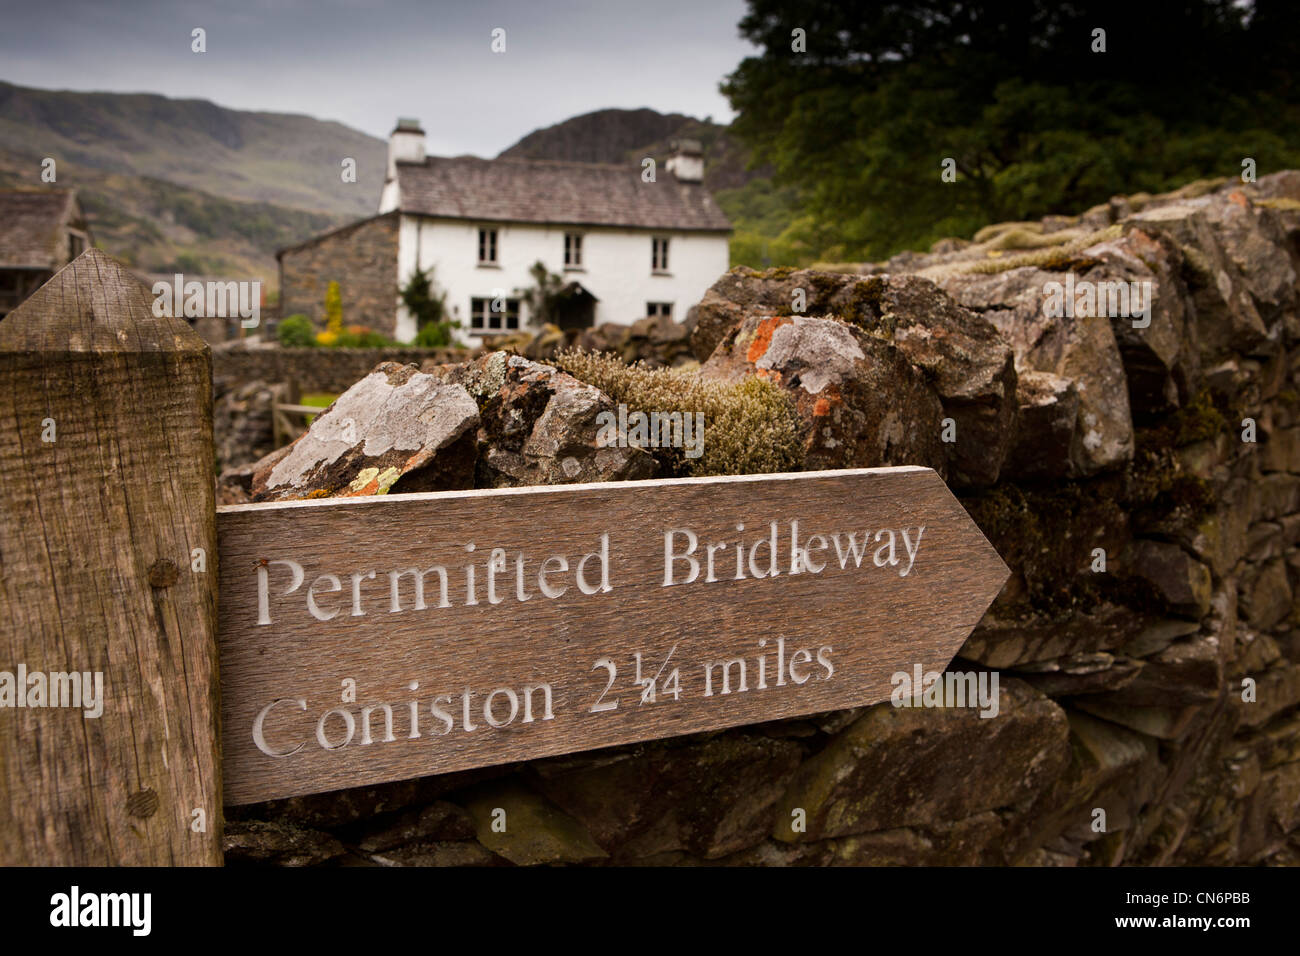 UK, Cumbria, Lake District, permitted bridleway wooden footpath signpost to Coniston at Yew Tree Farm - Stock Image